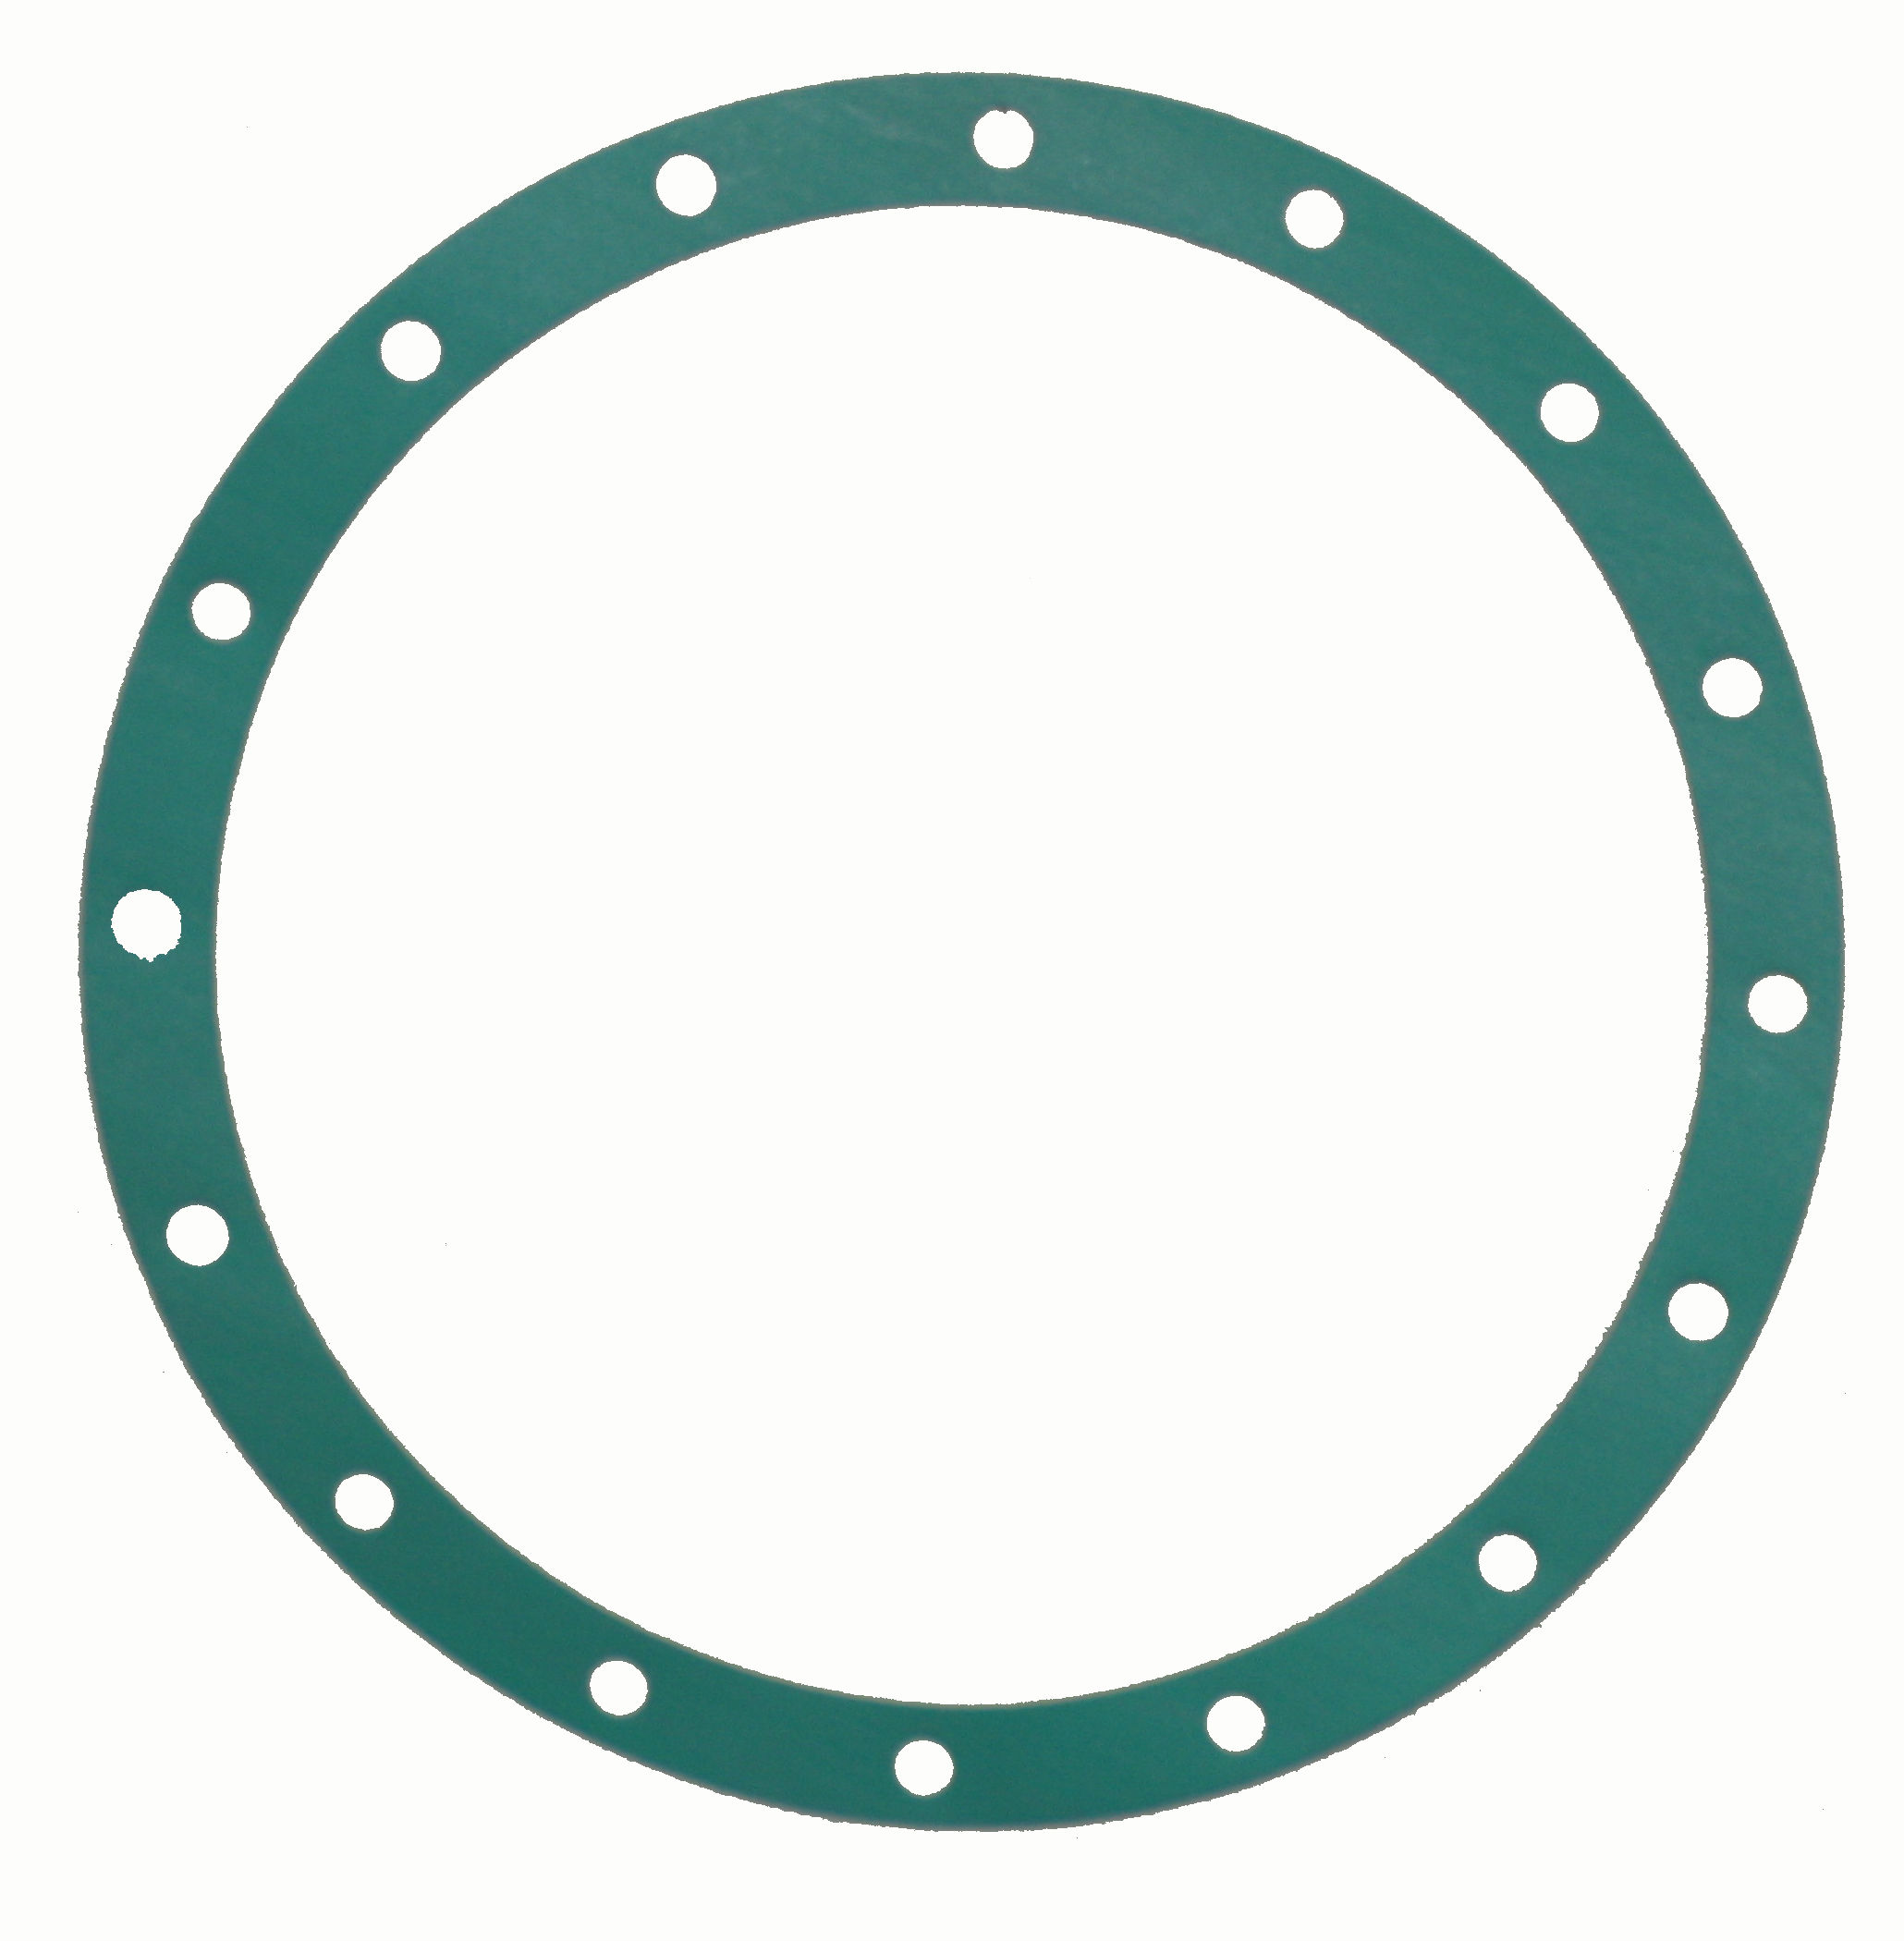 GKT-6348 Gasket; R/N GKT-953 (Made in the USA)